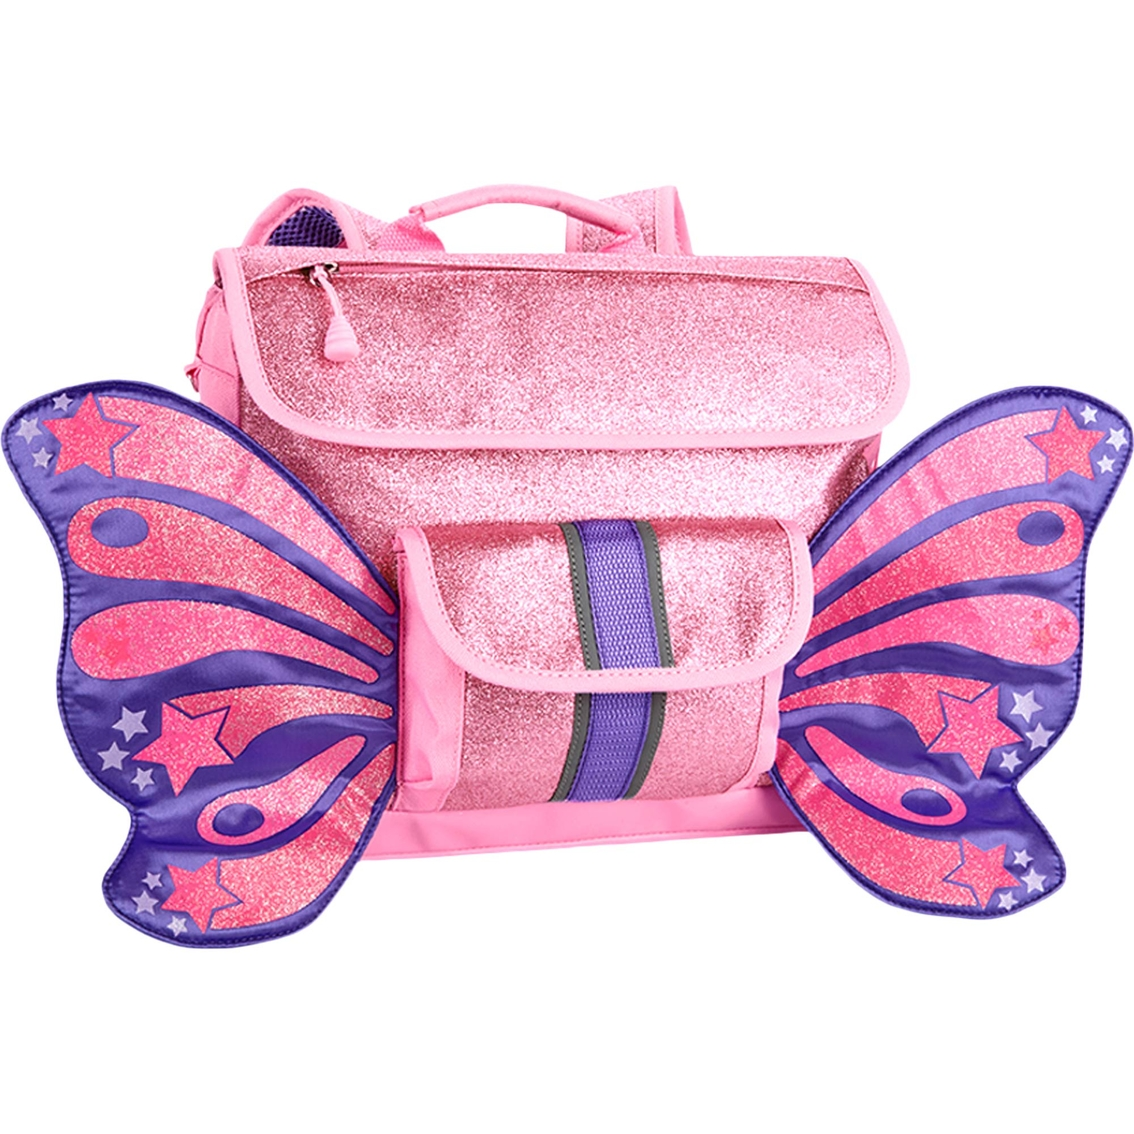 efd7986cc2 Bixbee Sparkalicious Butterflyer Small Backpack